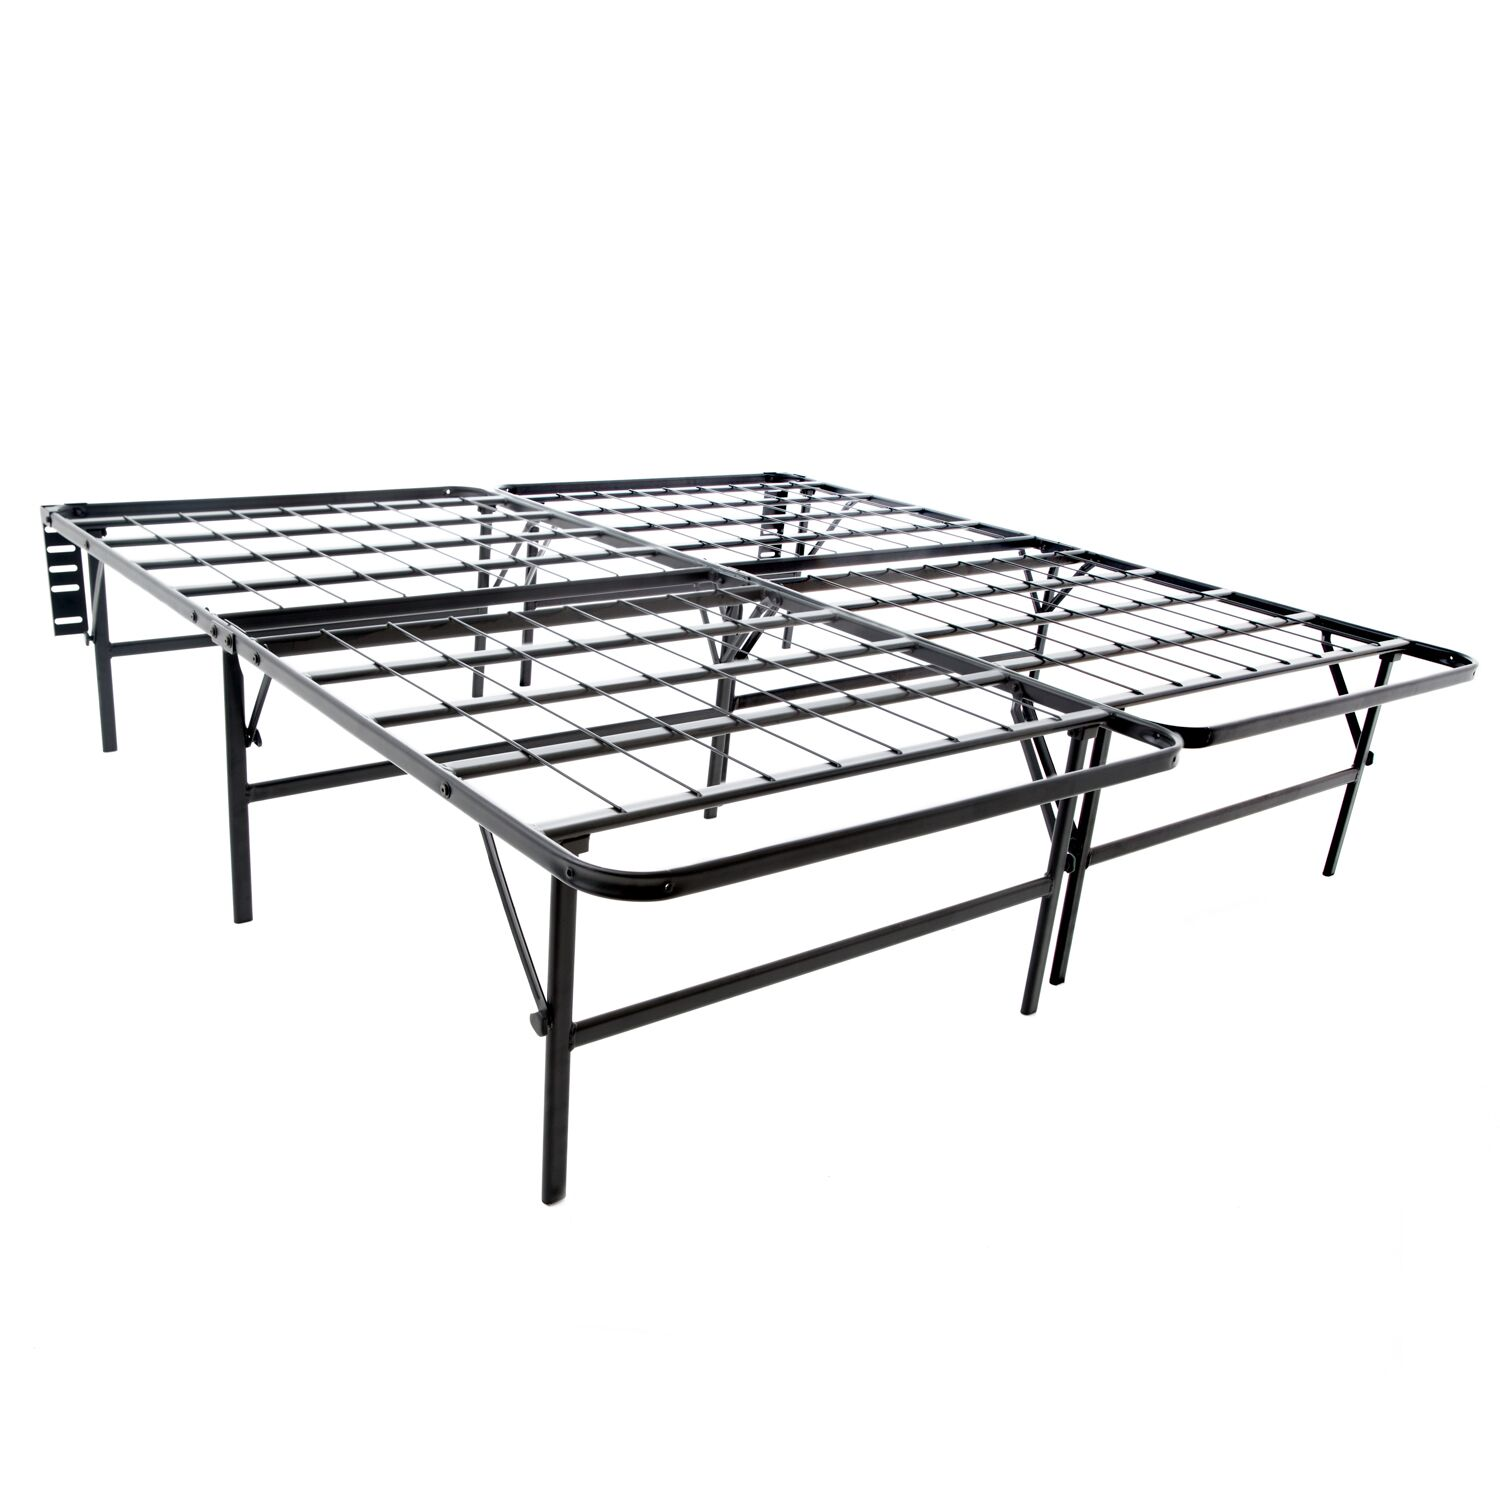 LTH Folding Bed Foundation Size: California King